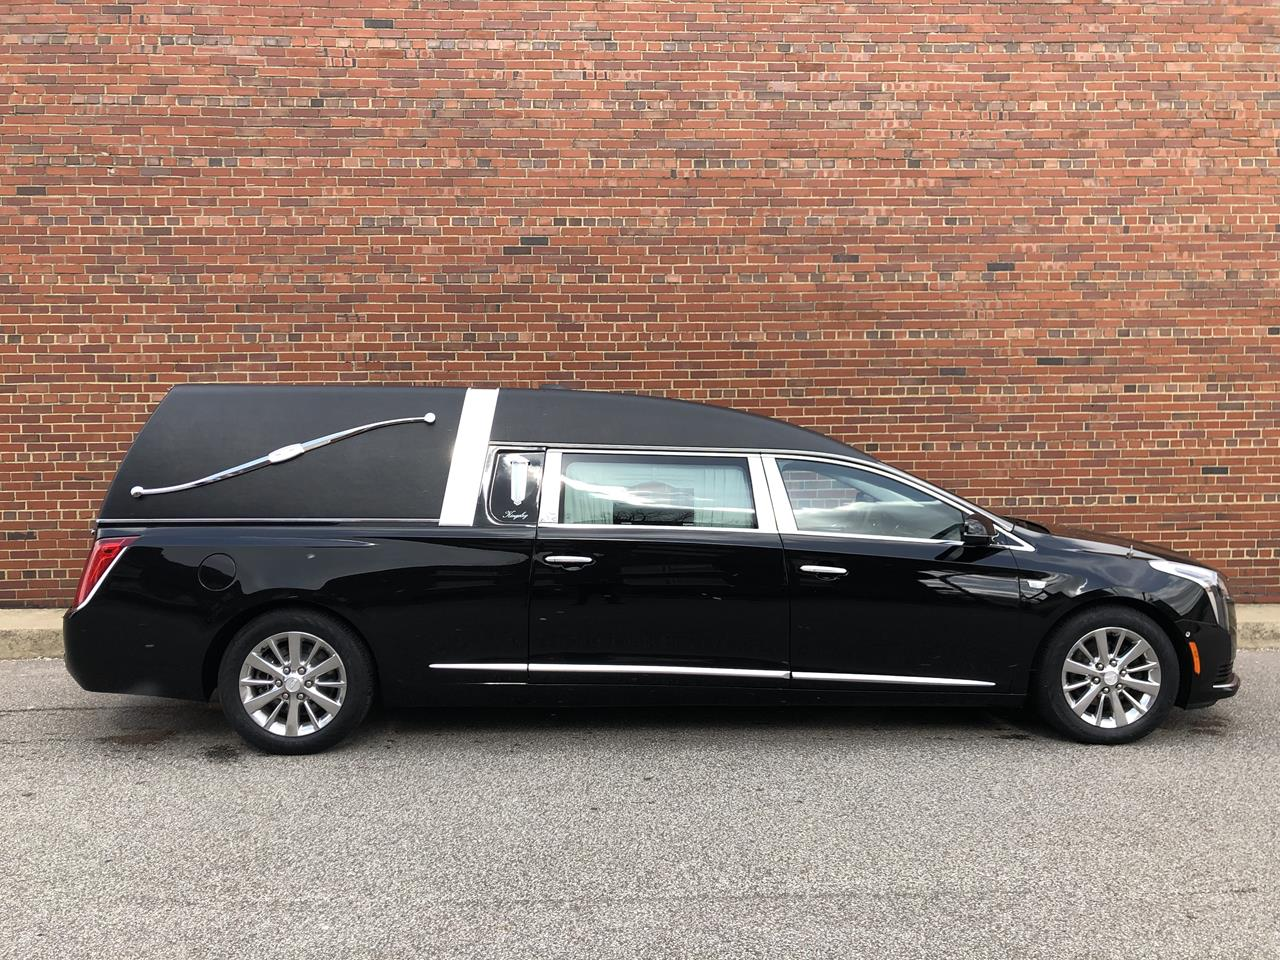 2019 Cadillac Eagle Kingsley Hearse